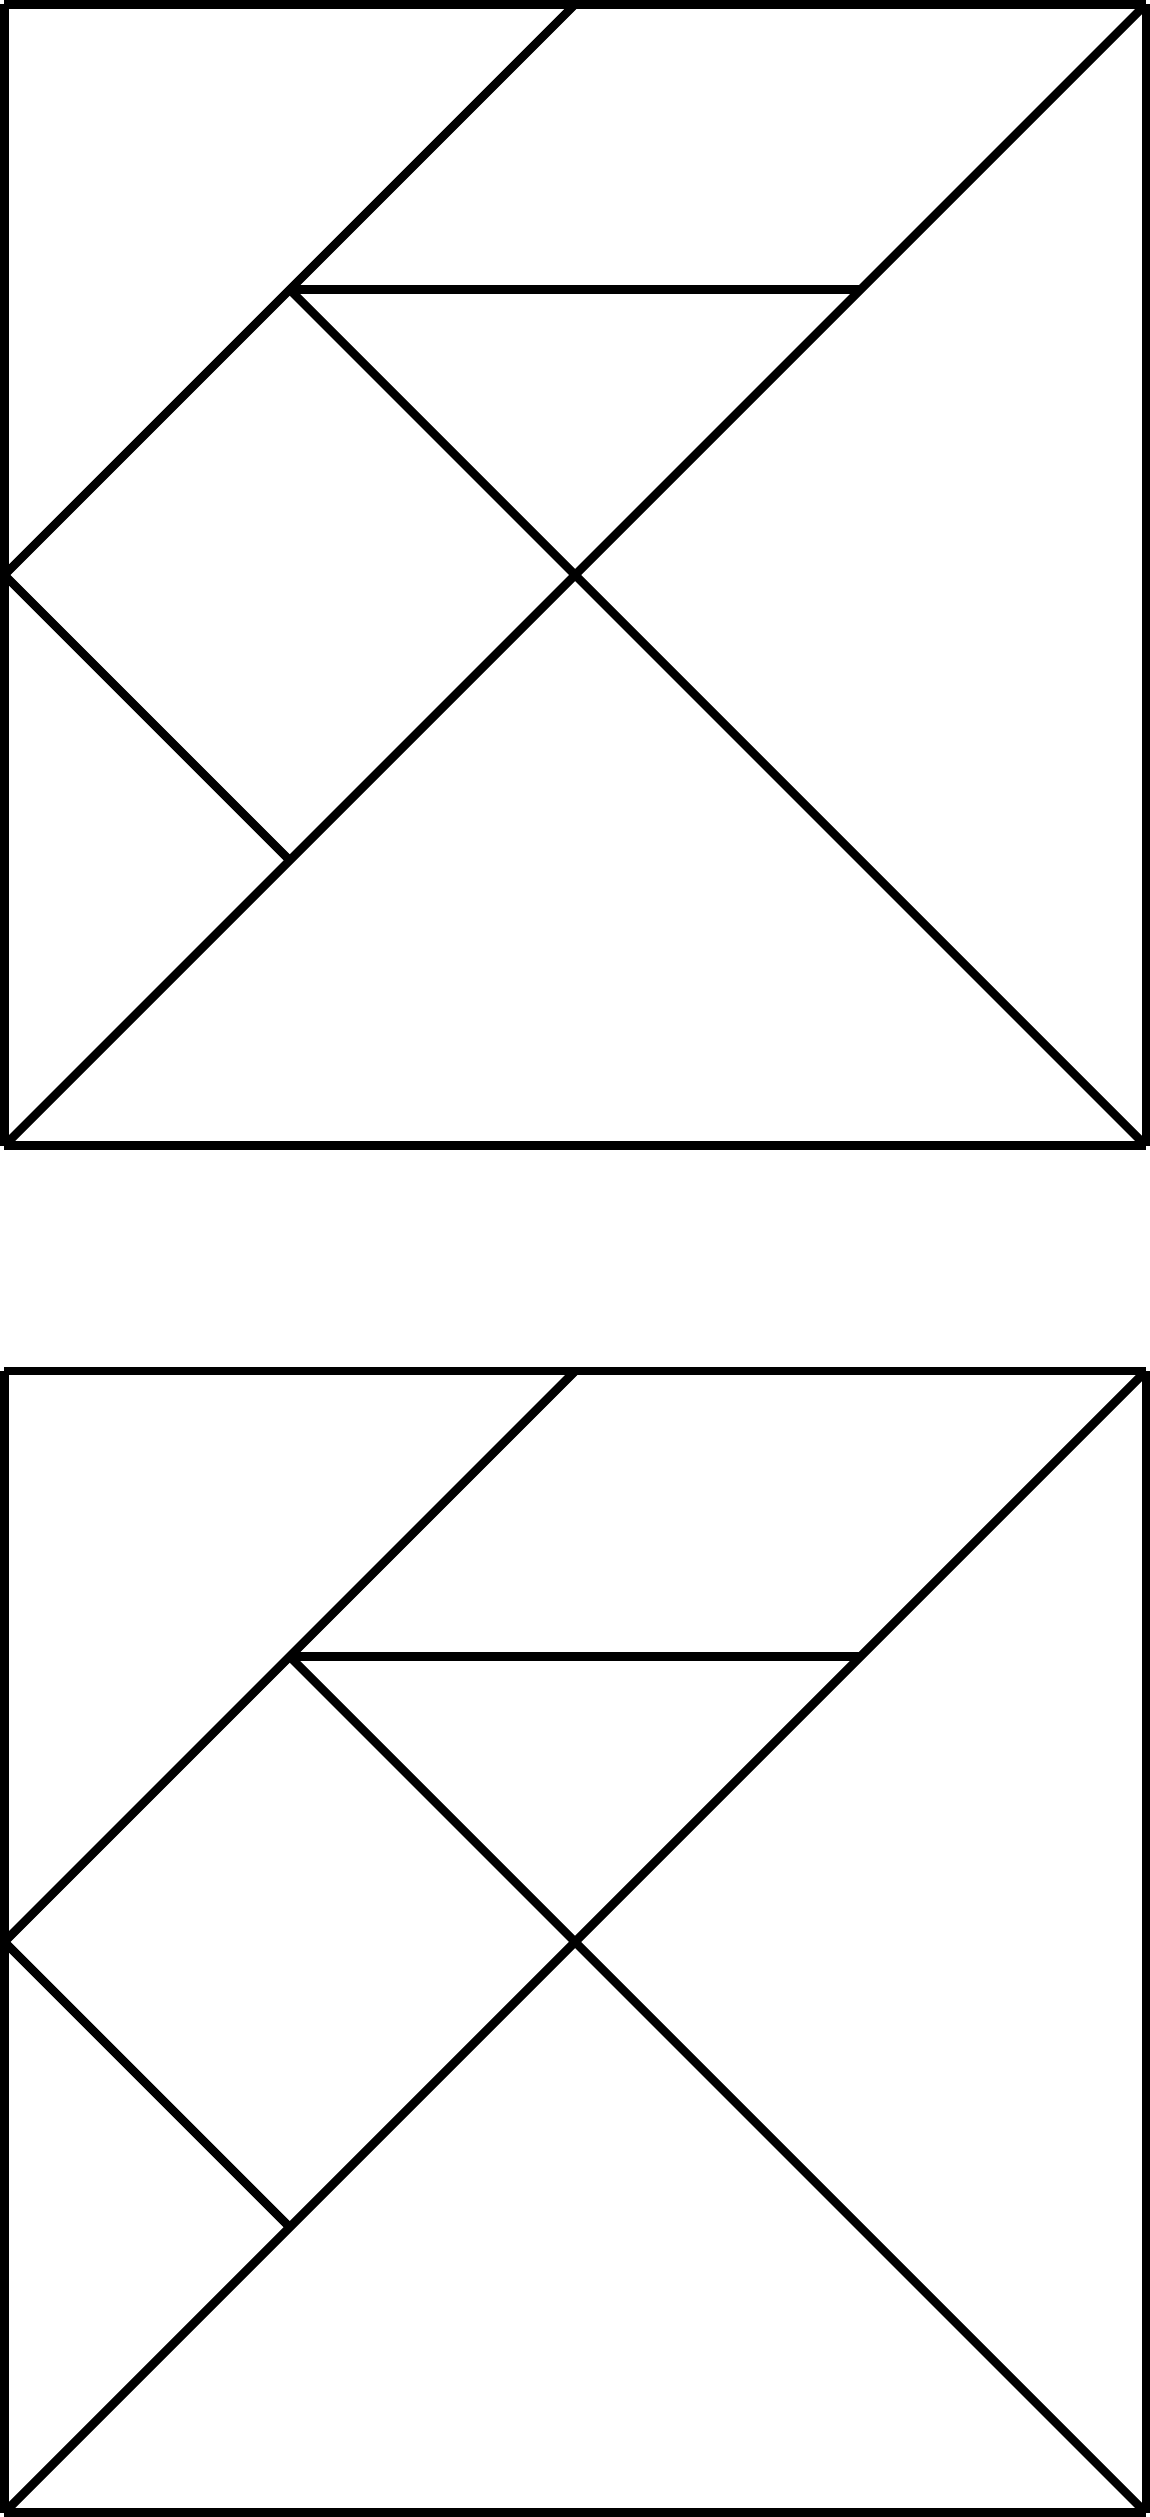 tangram puzzle template free download